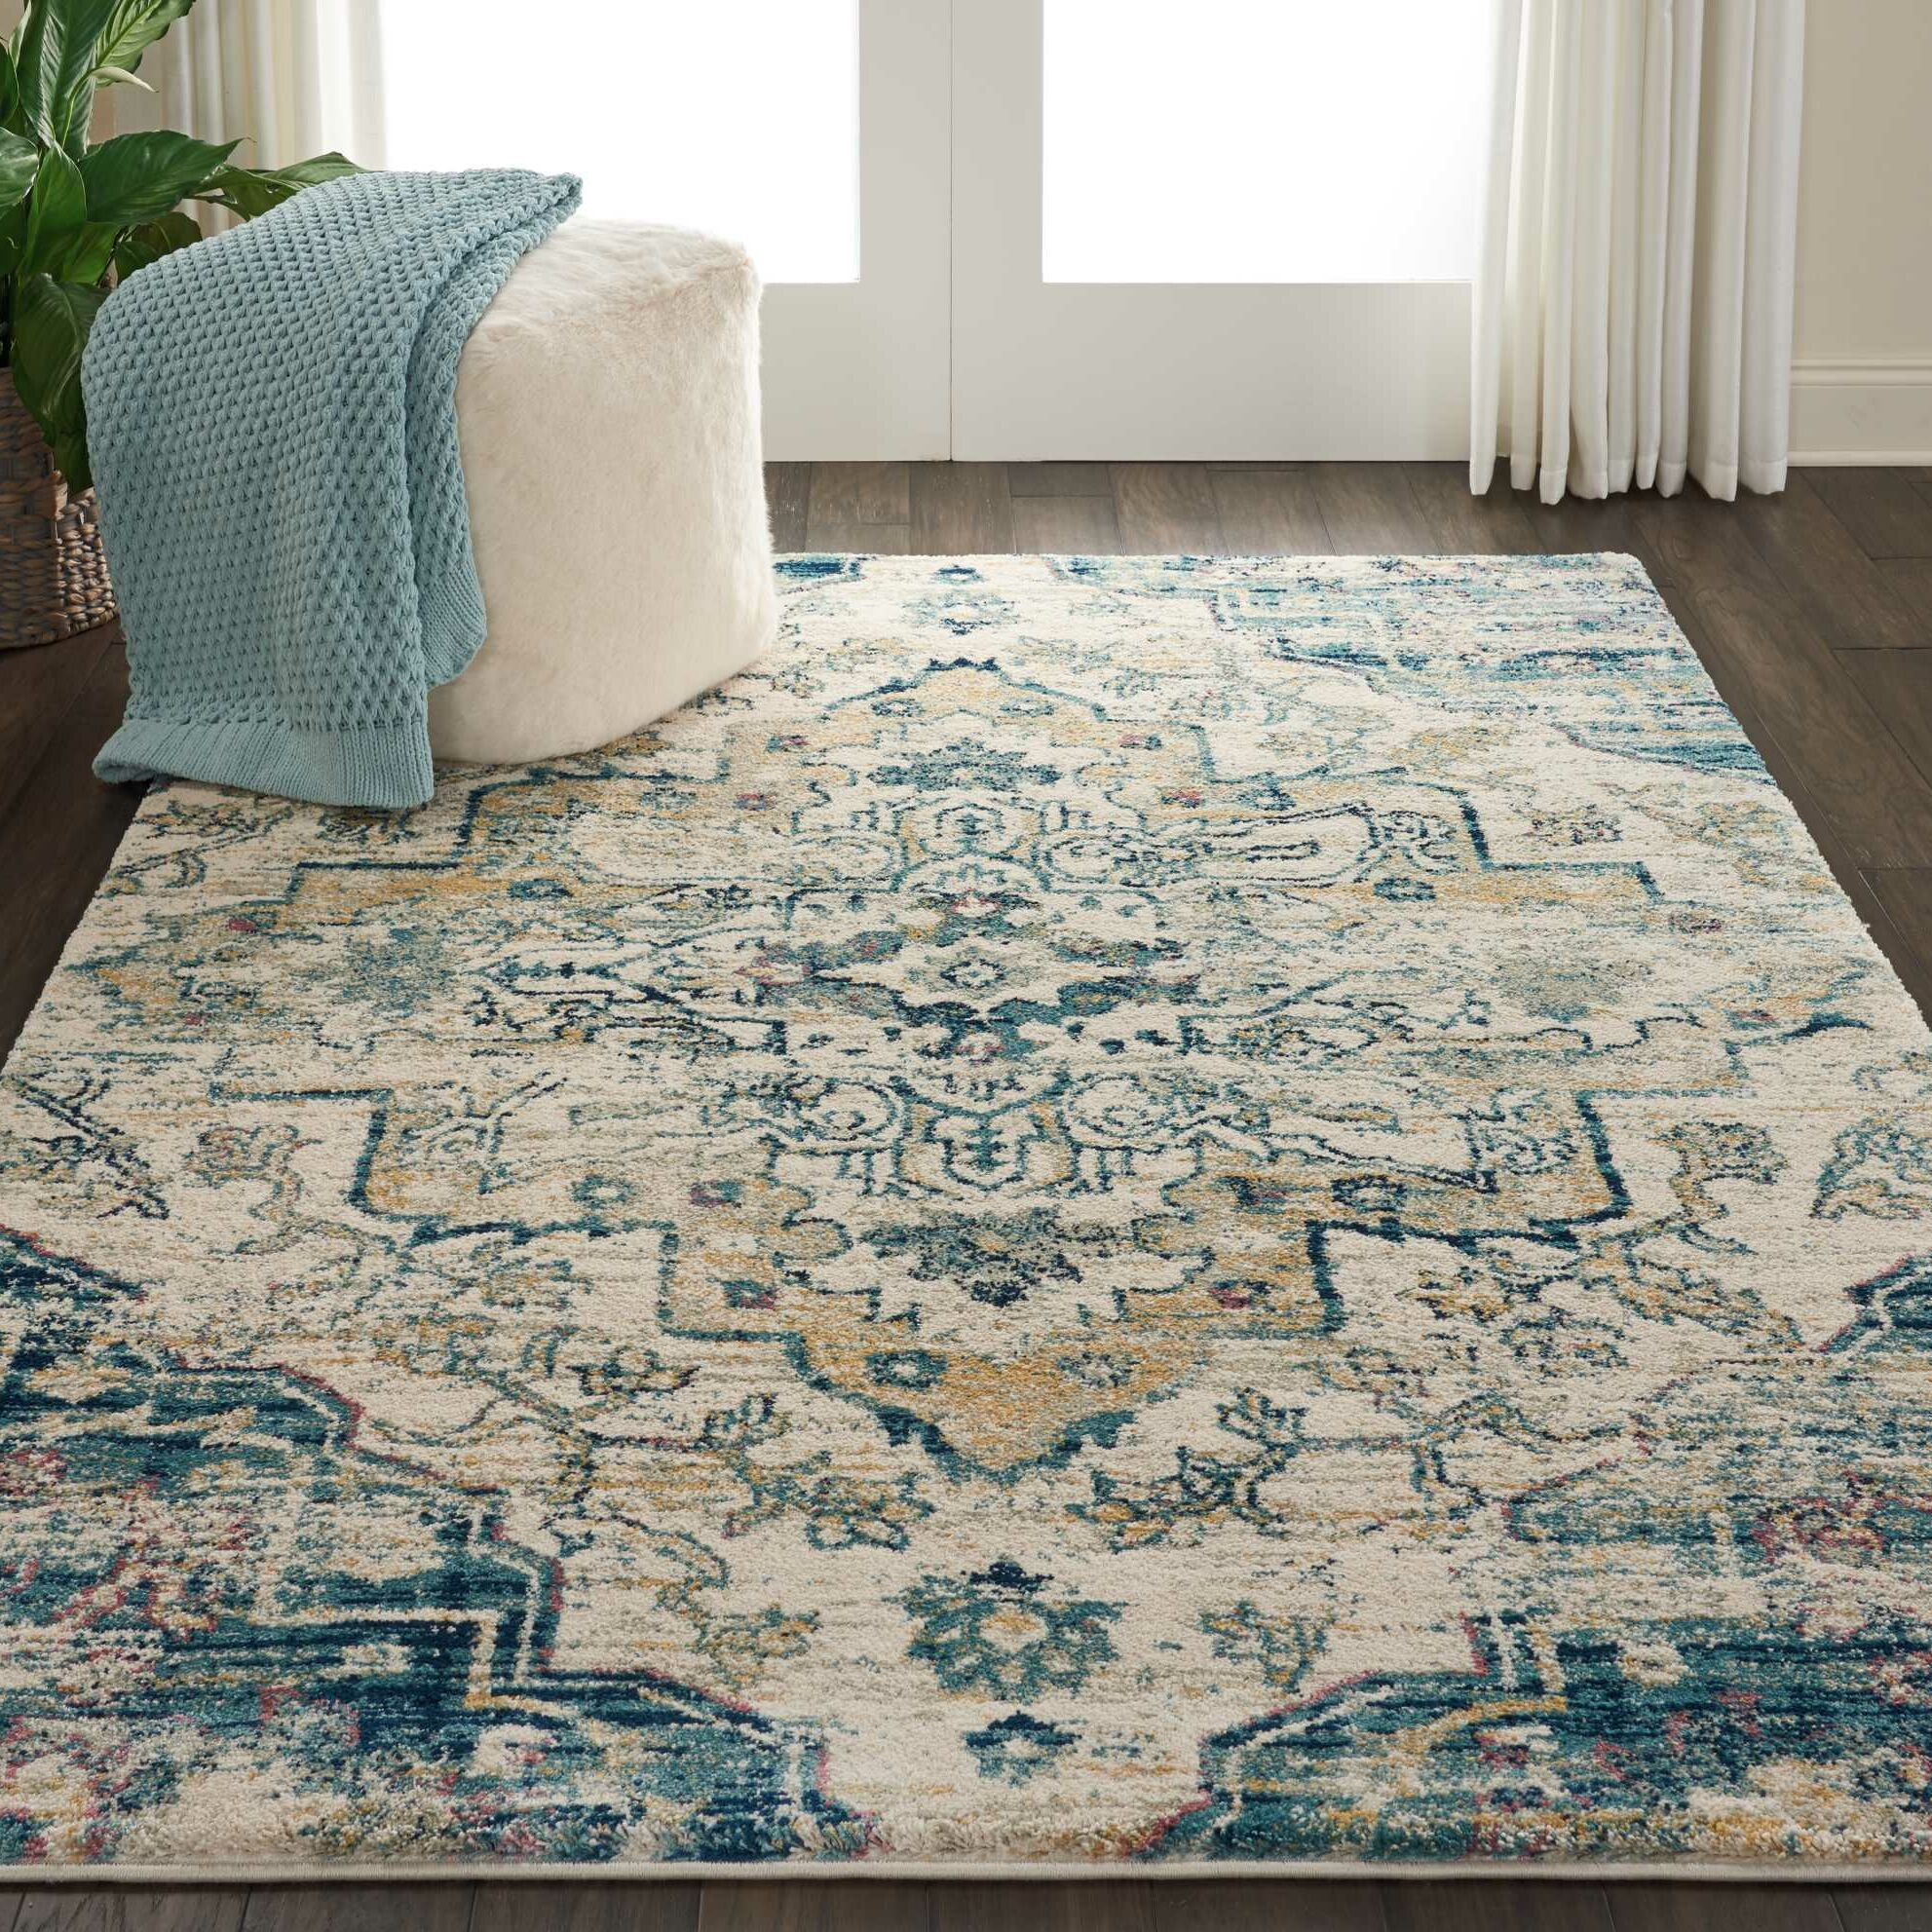 Bellock Oriental Beige/Blue Area Rug Rug Size: Rectangle 5'3